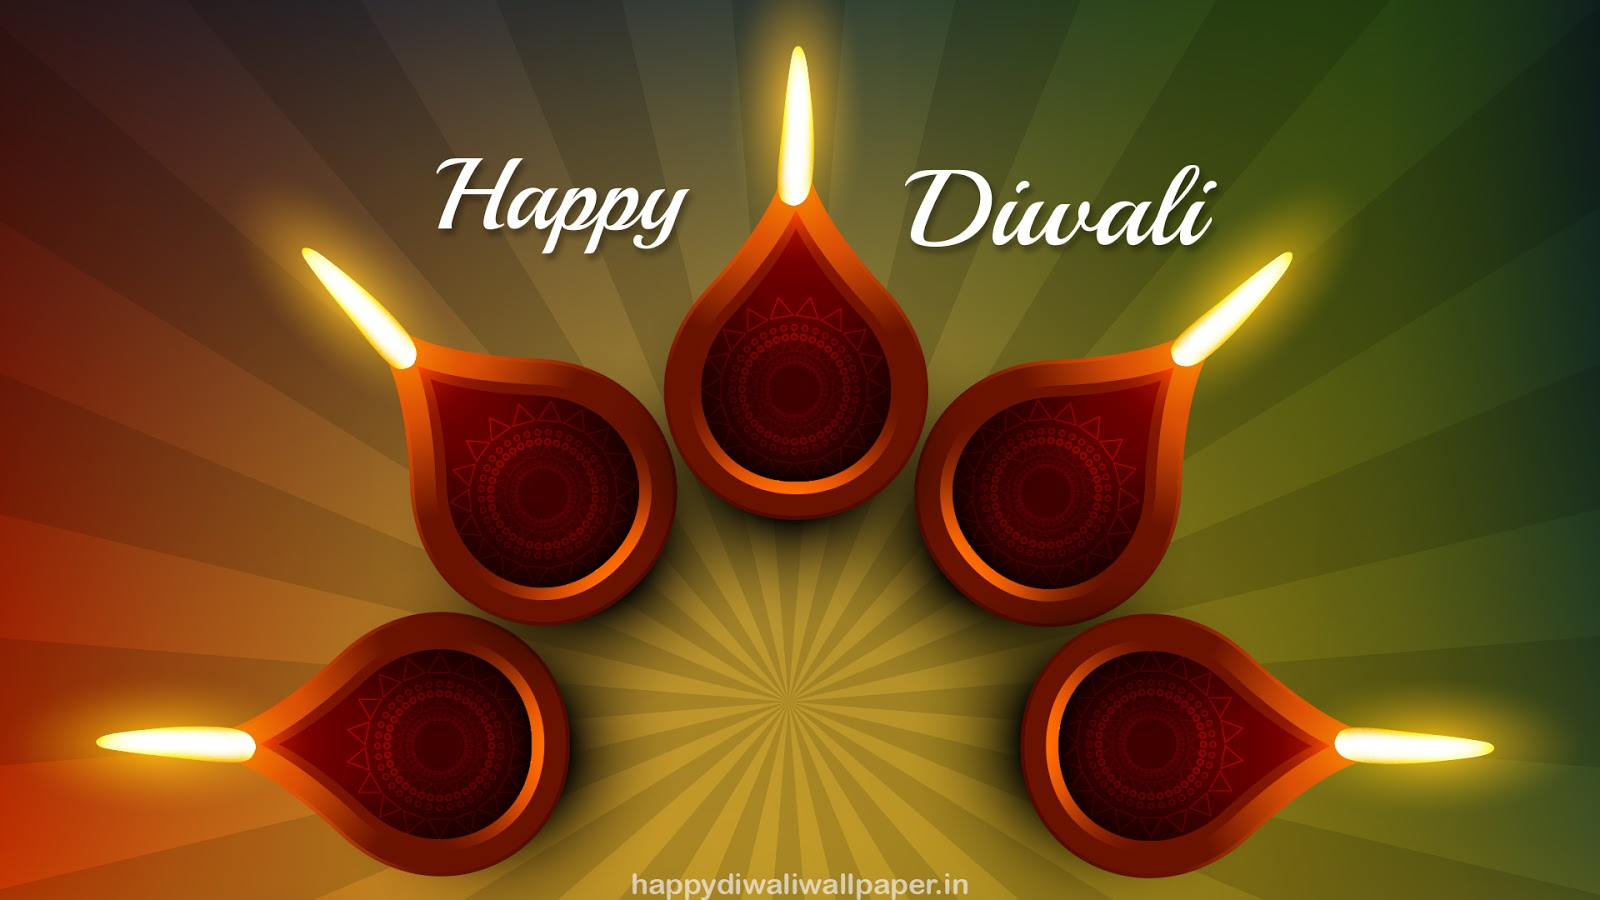 happy diwali wallpaper 2017 - diwalli whatsapp status, videos